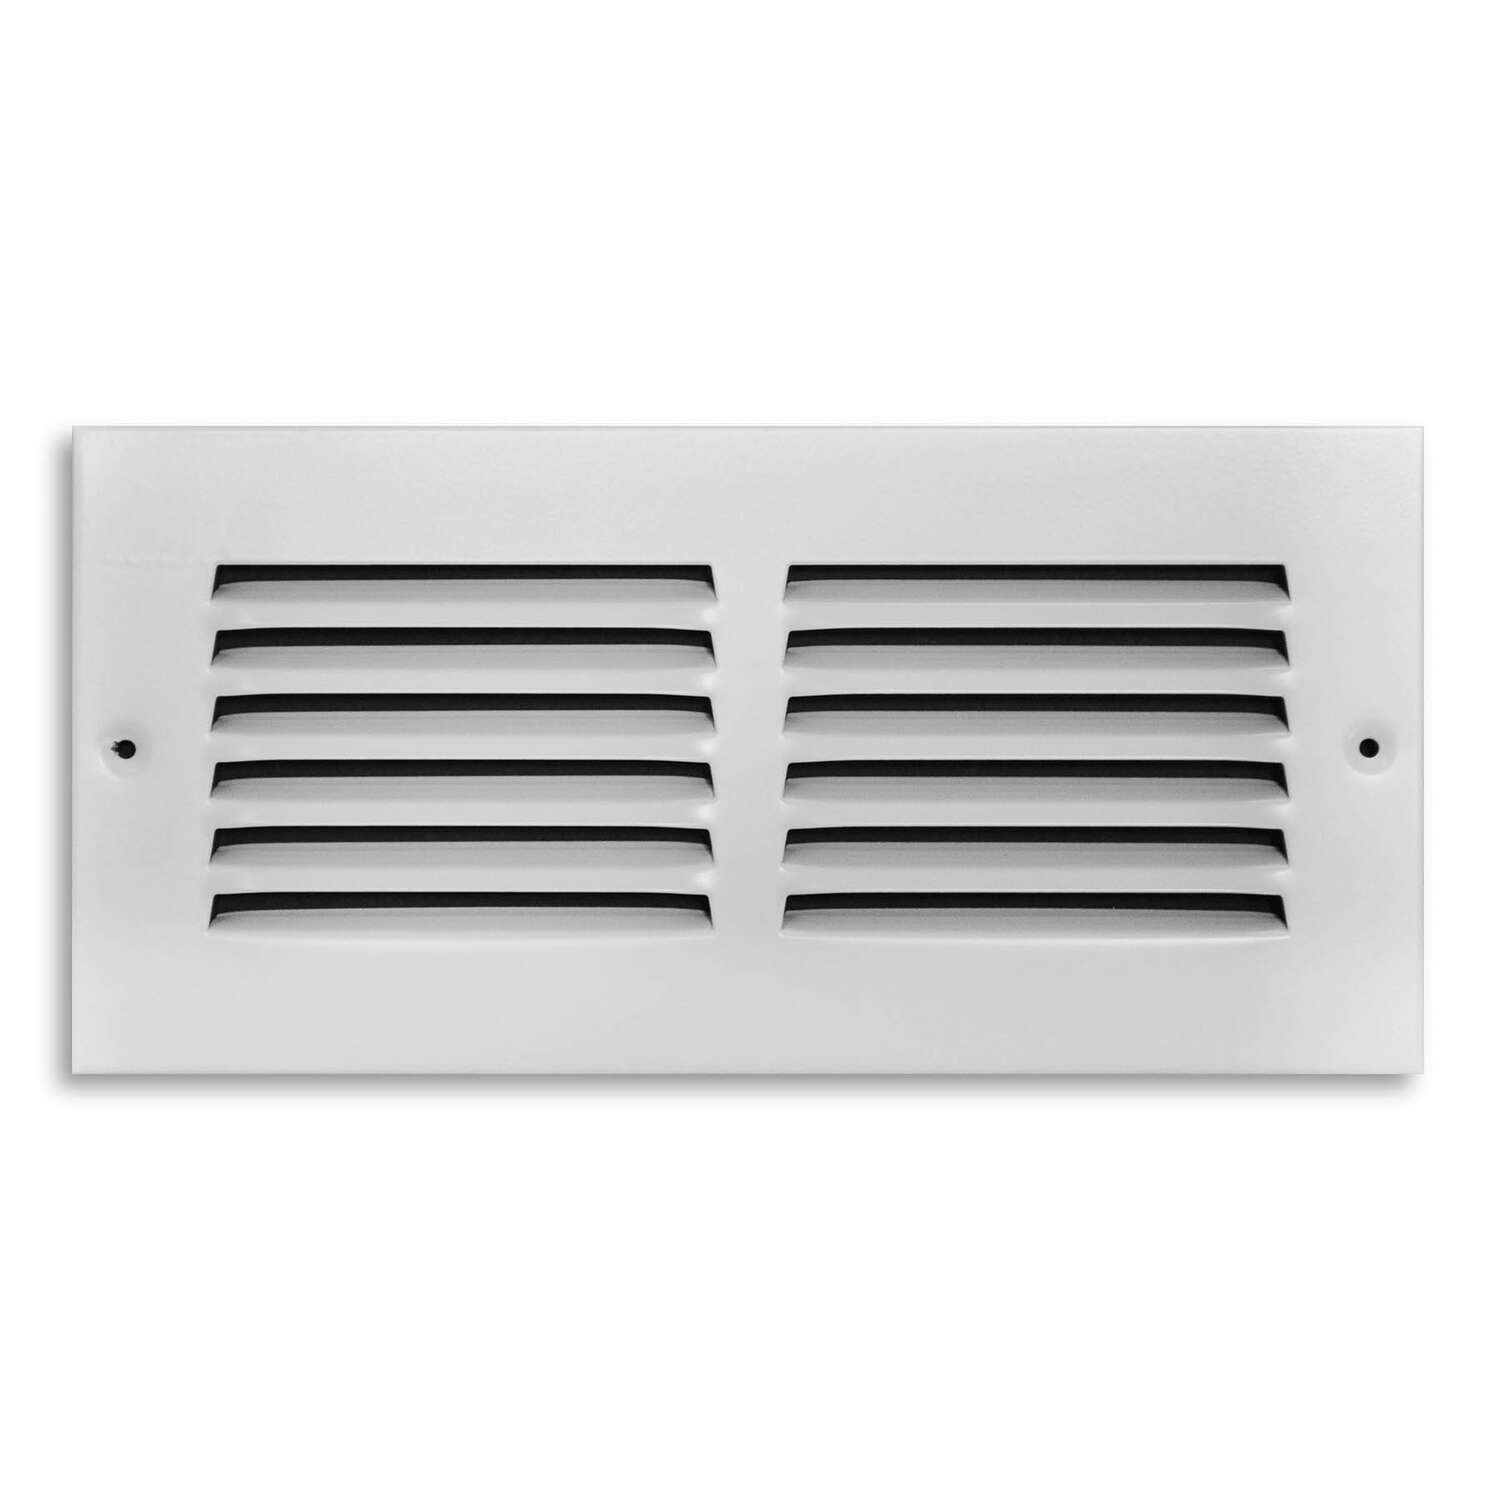 Tru Aire 4 in. H x 10 in. W 1-Way Powder Coat White Steel Return Air Grille